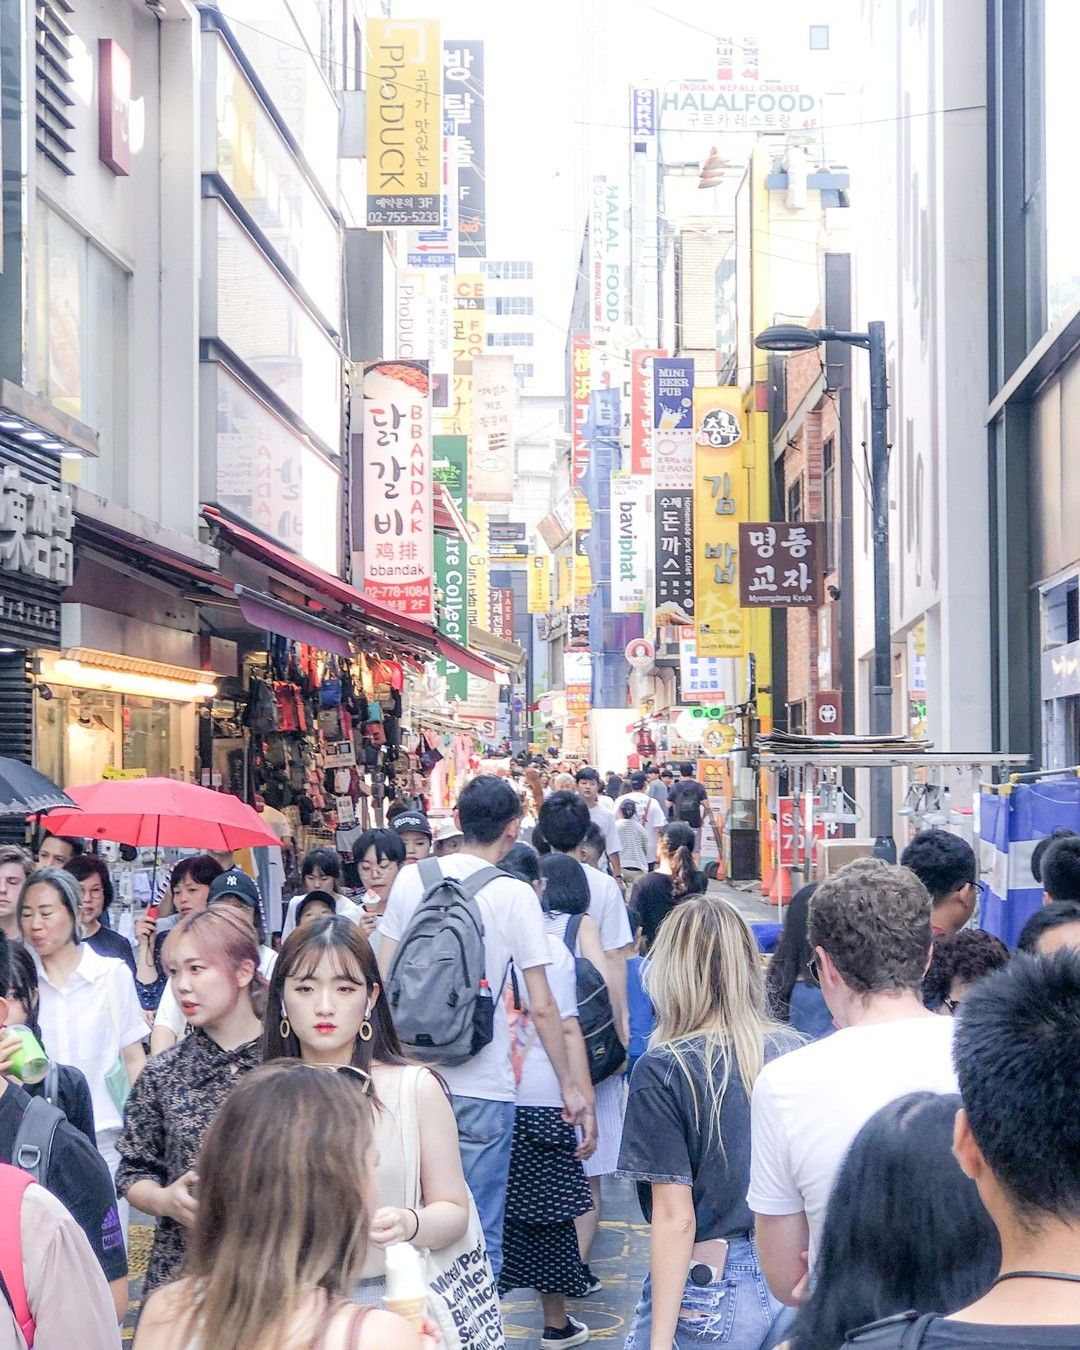 Basically The Times Square Of South Korea Overwhelming And Chaotic In 2020 South Korea Travel Korea Travel Visit Seoul